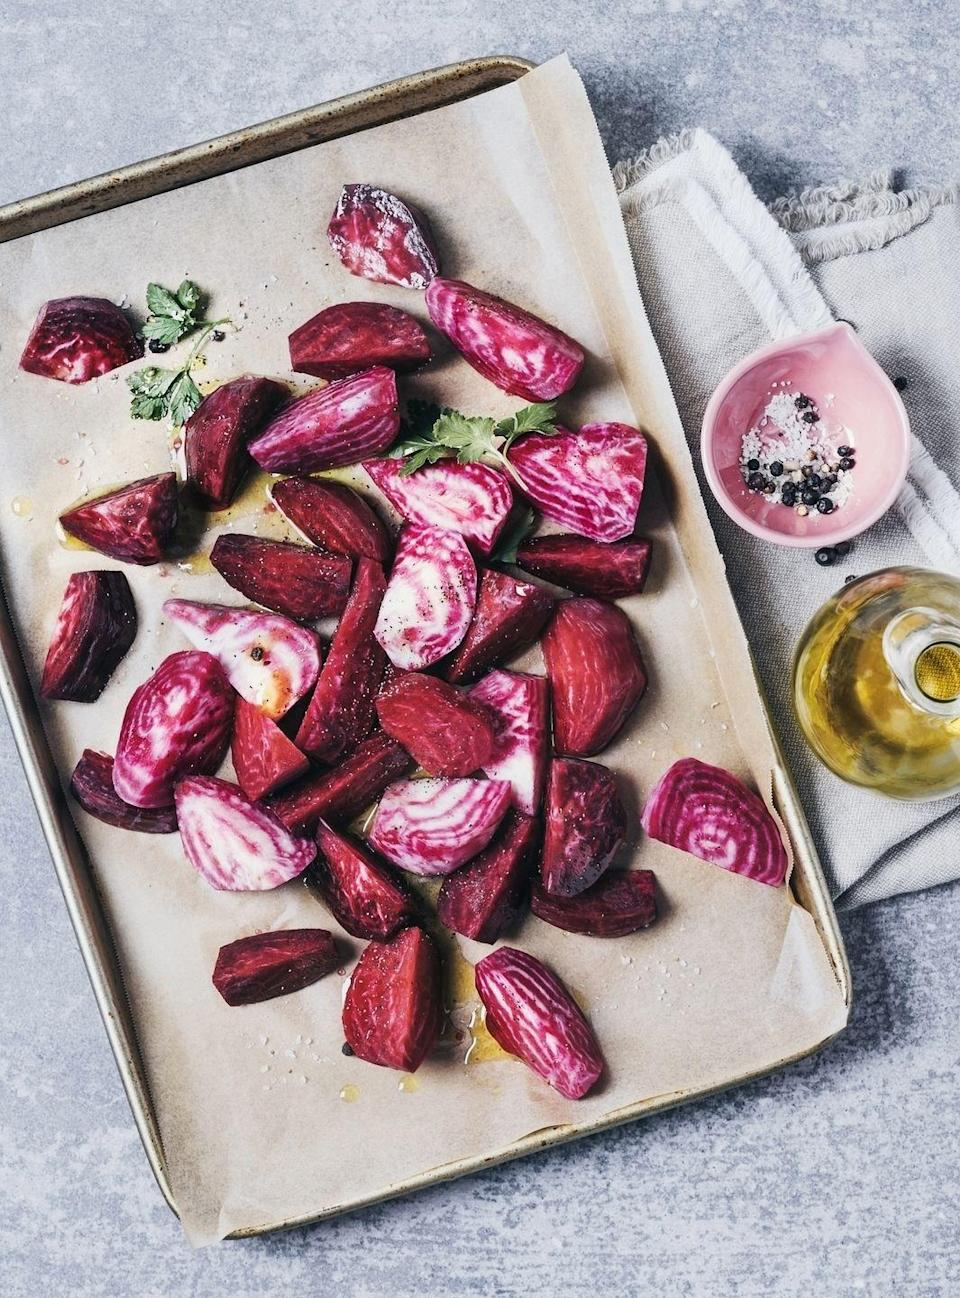 """<p>If you're planning on roasting veggies, know that this often takes some time. Roasting can take about a half hour, if not longer. One way to speed up the process just a bit is to pre-warm the sheet pants. """"To speed up that process, I pop a sheet pan in the oven to preheat until rocking hot, then hit the hot pan with the seasoned veggies. This helps to both decrease the cook time and guarantees those texture-happy, crispy veggie edges,"""" advises Prescott. </p>"""